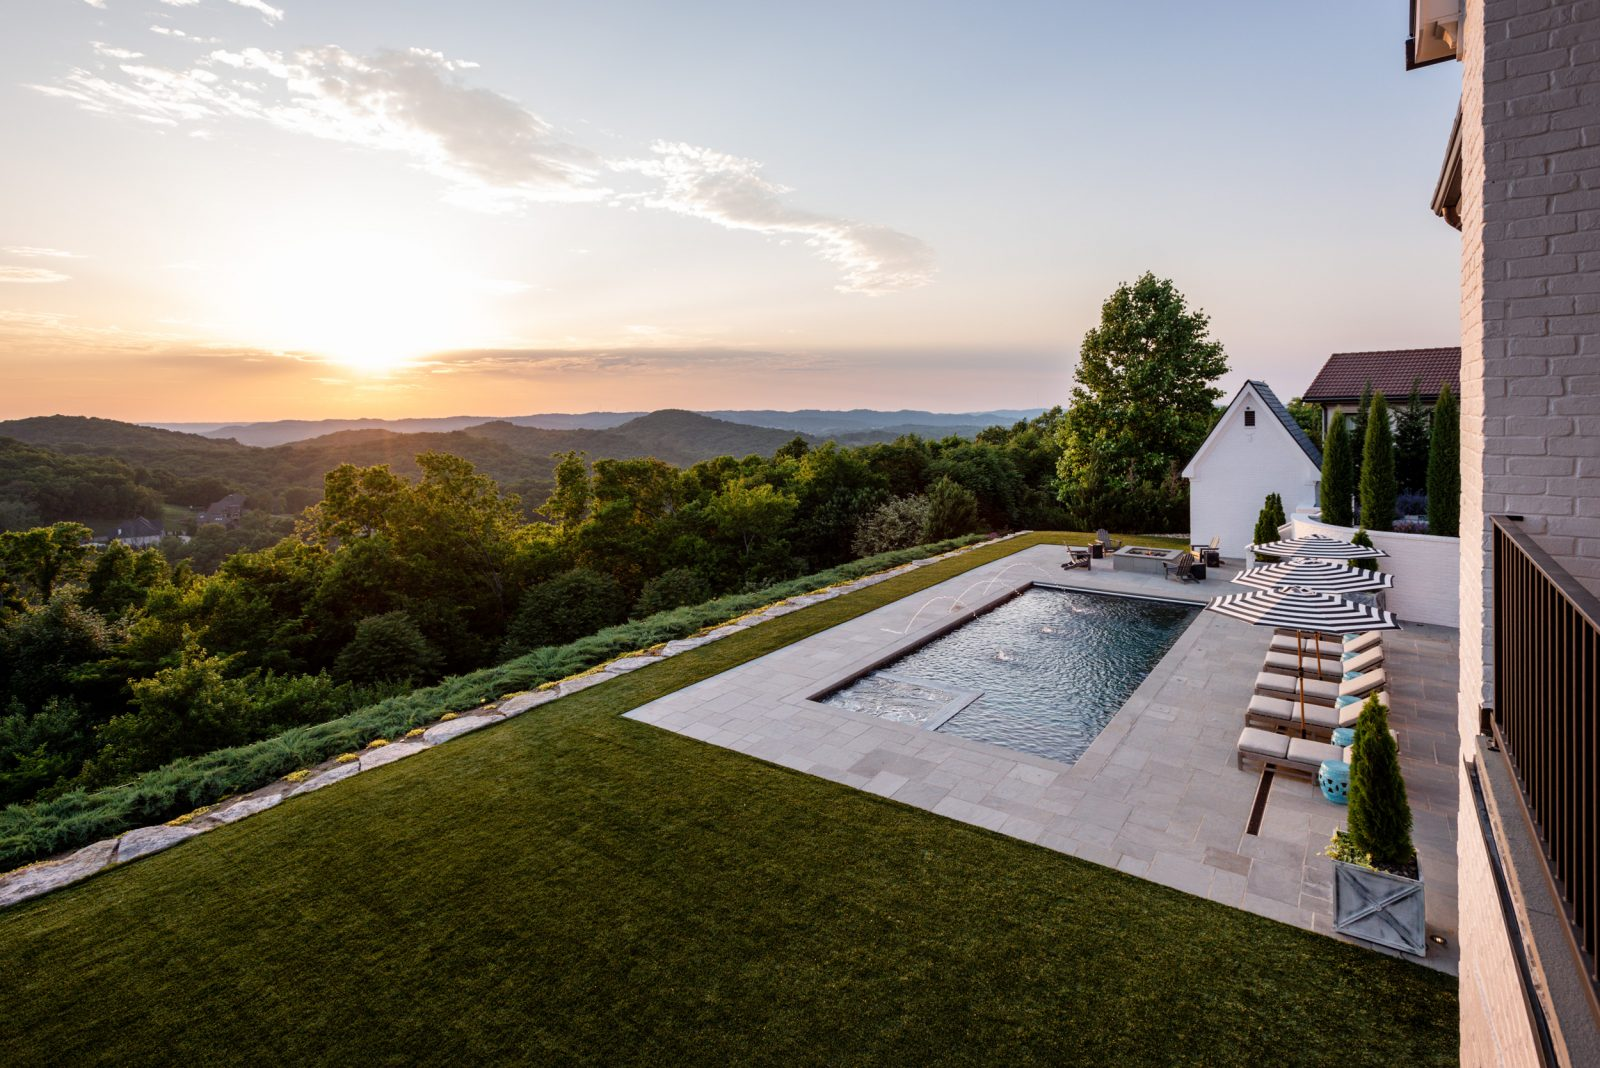 Canterbury Rise backyard pool and oasis in Tennessee